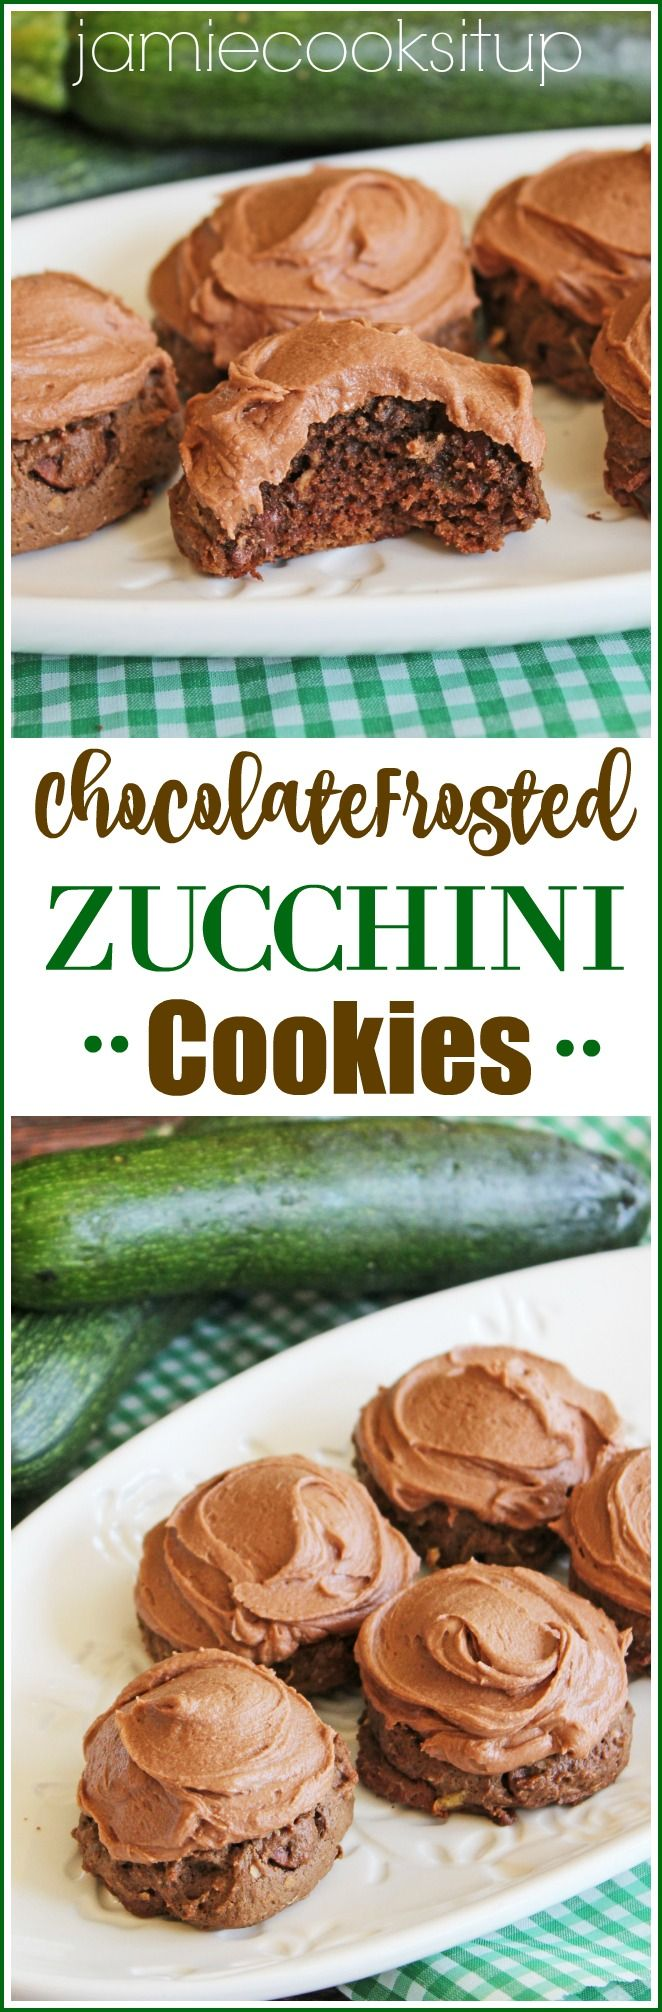 Chocolate Frosted Zucchini Cookies Jamie Cooks It Up! A soft, cake like cookie slathered in a silky chocolate buttercream. A great way to use up that garden zucchini!